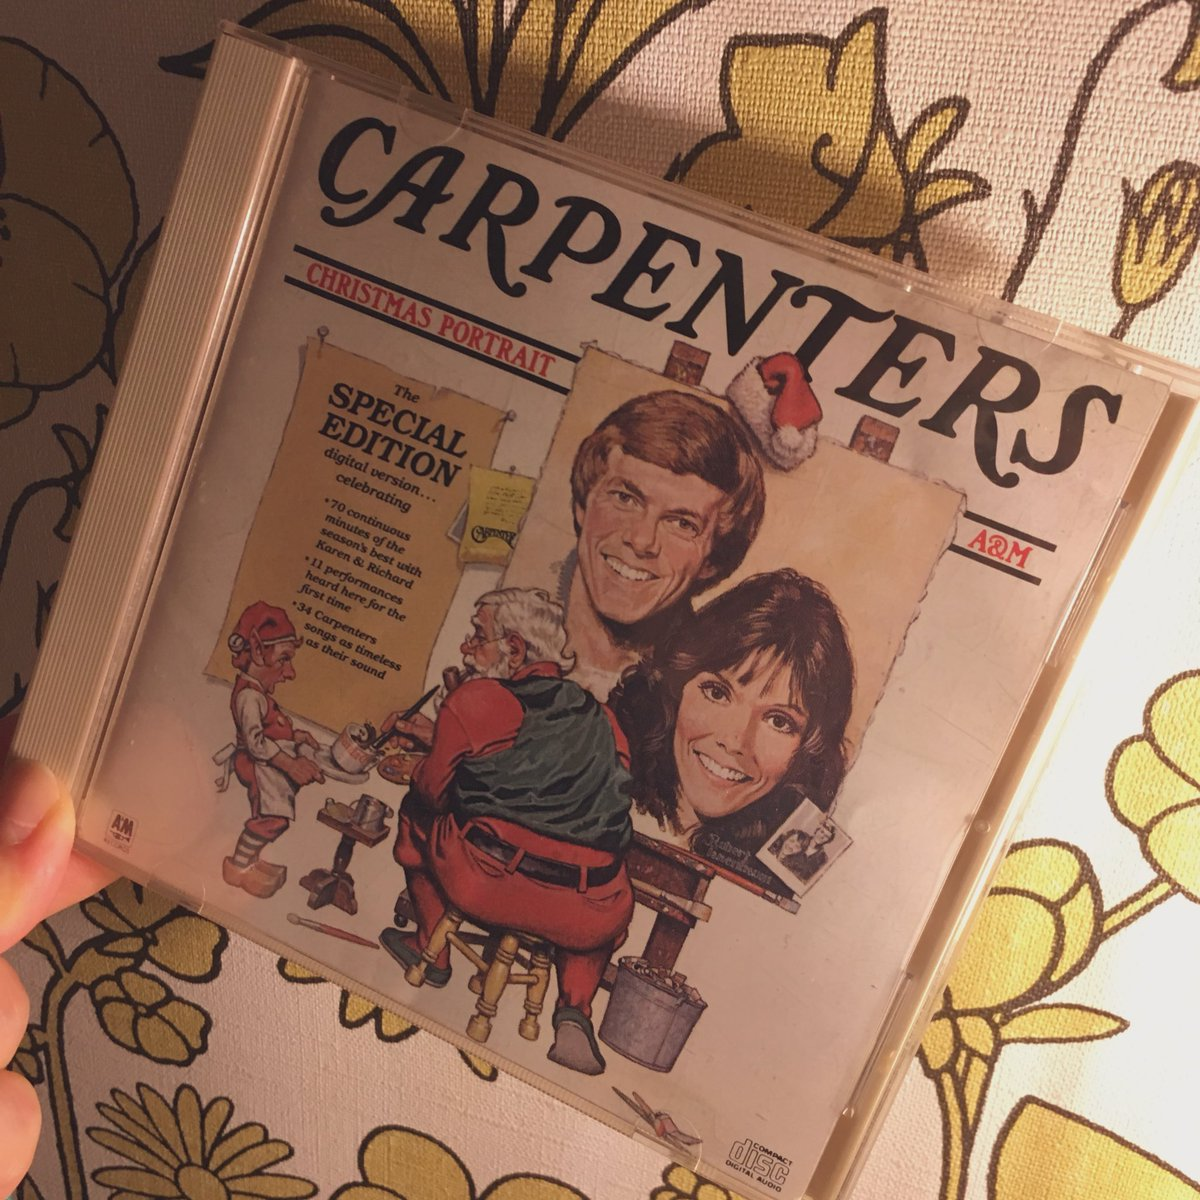 Carpenters Christmas Portrait.Hashtag Christmasportrait Sur Twitter